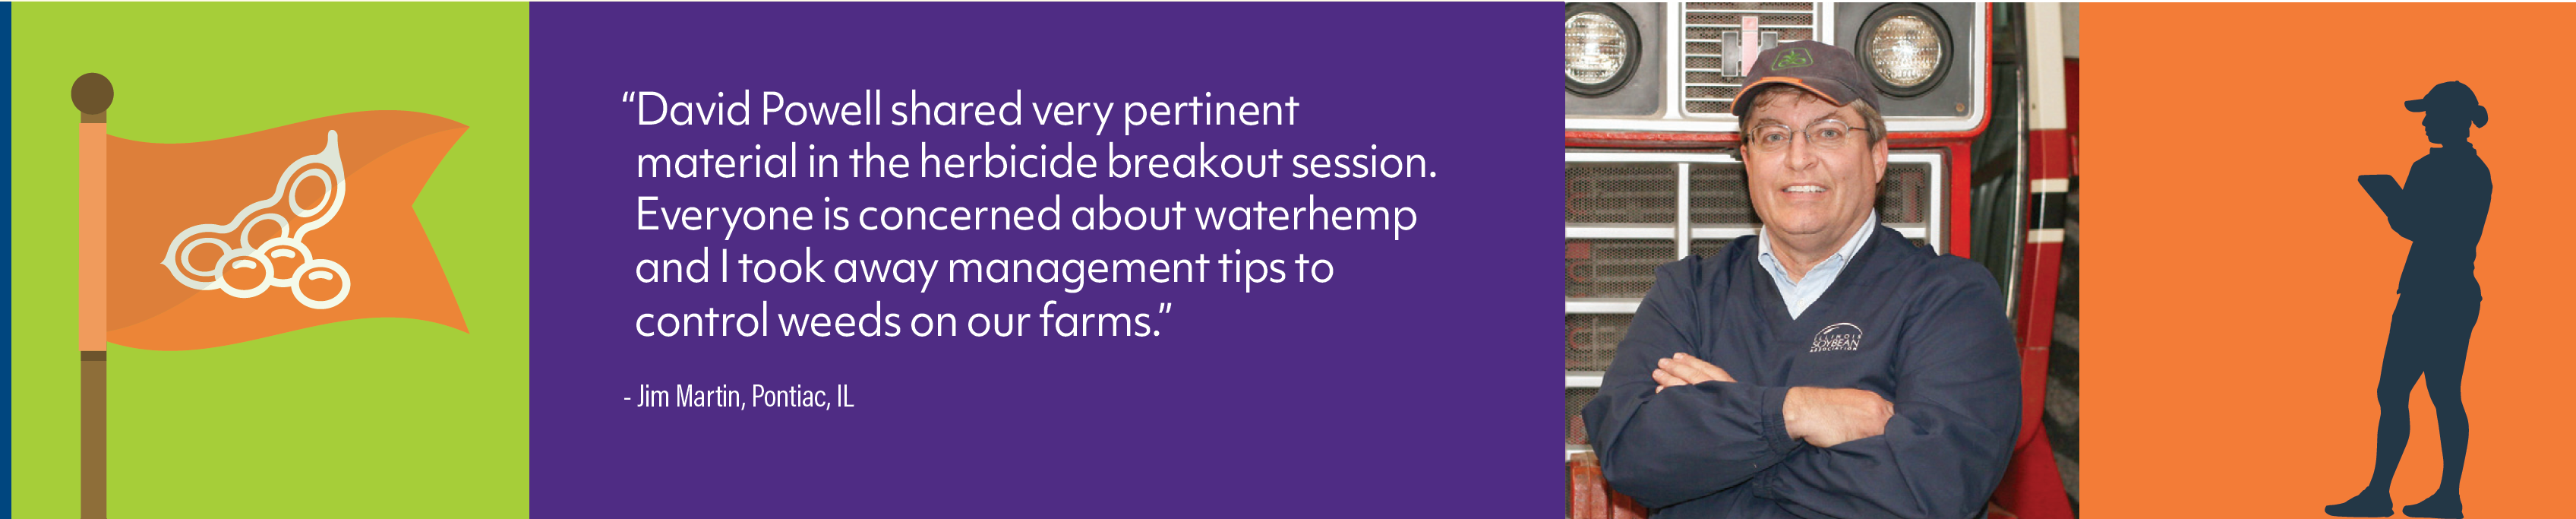 """David Powell shared very pertinent material in the herbicide breakout session. Everyone is concerned about waterhemp and I took away management tips to control weeds on our farms."""